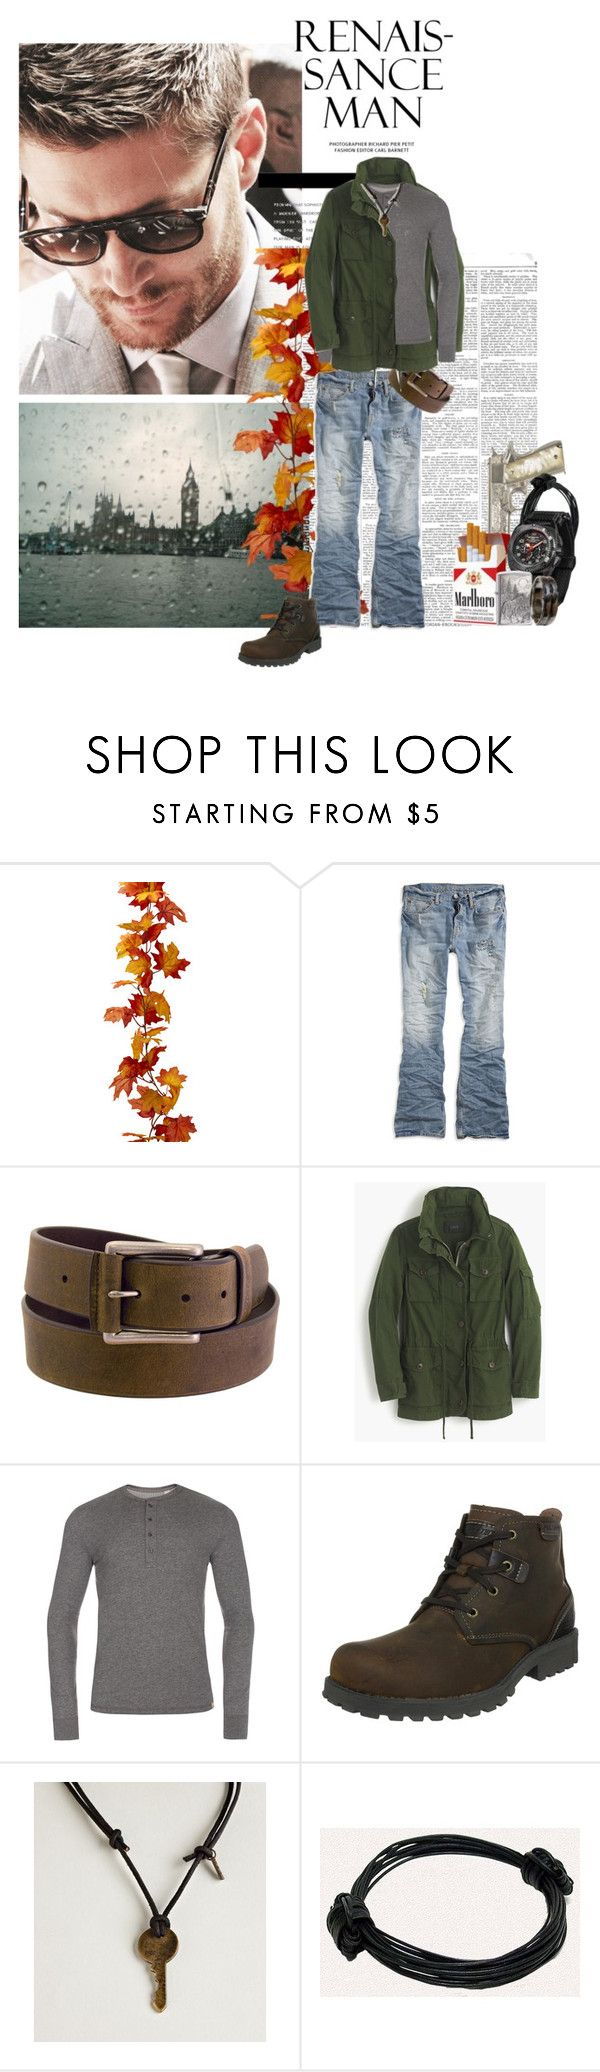 """`another day, another penny"" by mars-phoenix ❤ liked on Polyvore featuring mode, American Eagle Outfitters, Wrangler, J.Crew, Paul Smith, Skechers, MTM Special Ops et Zippo"